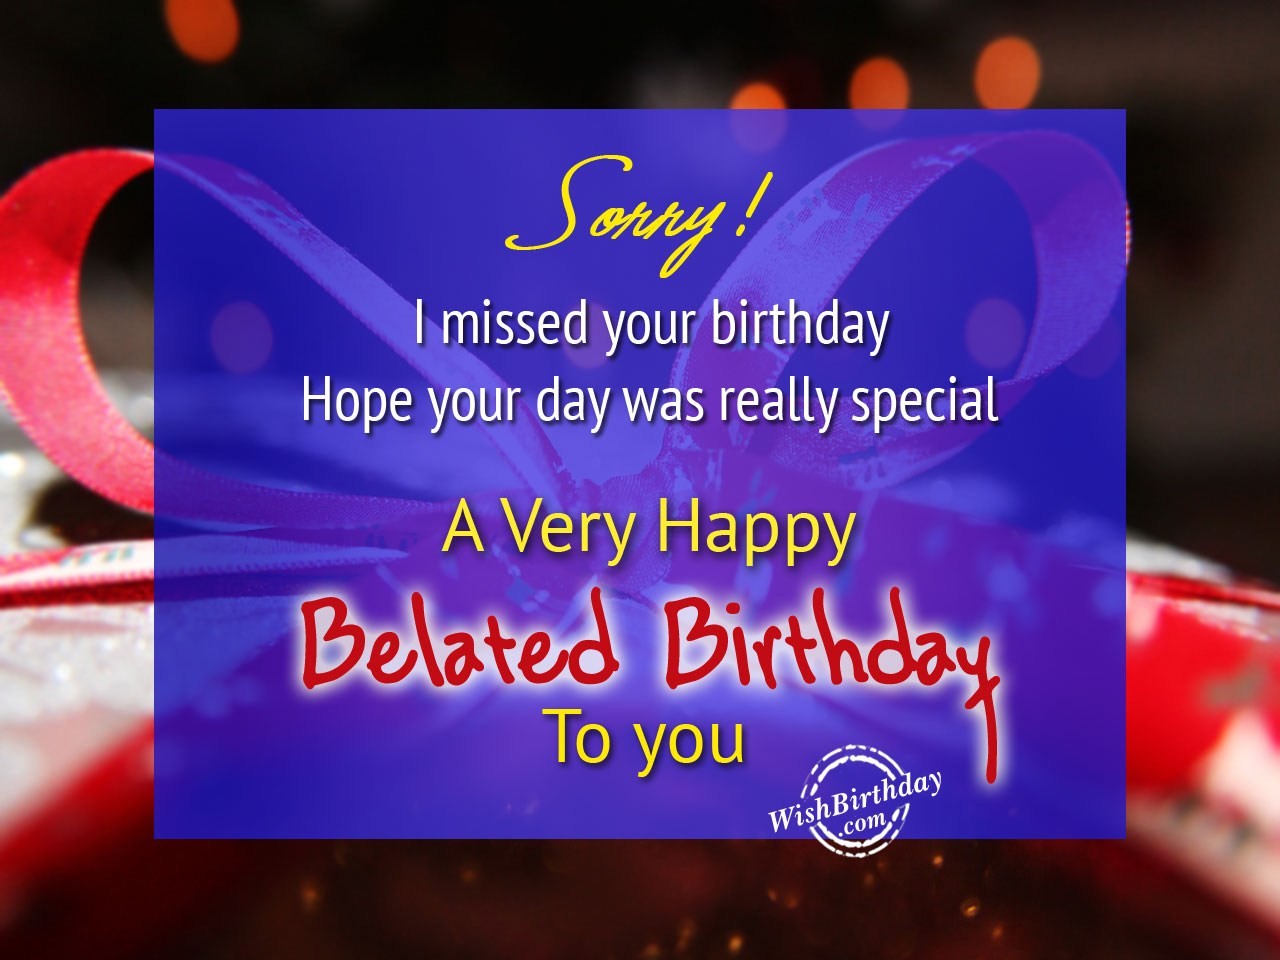 Belated Happy Birthday Wishes Birthday Images Pictures – Wish Birthday Card